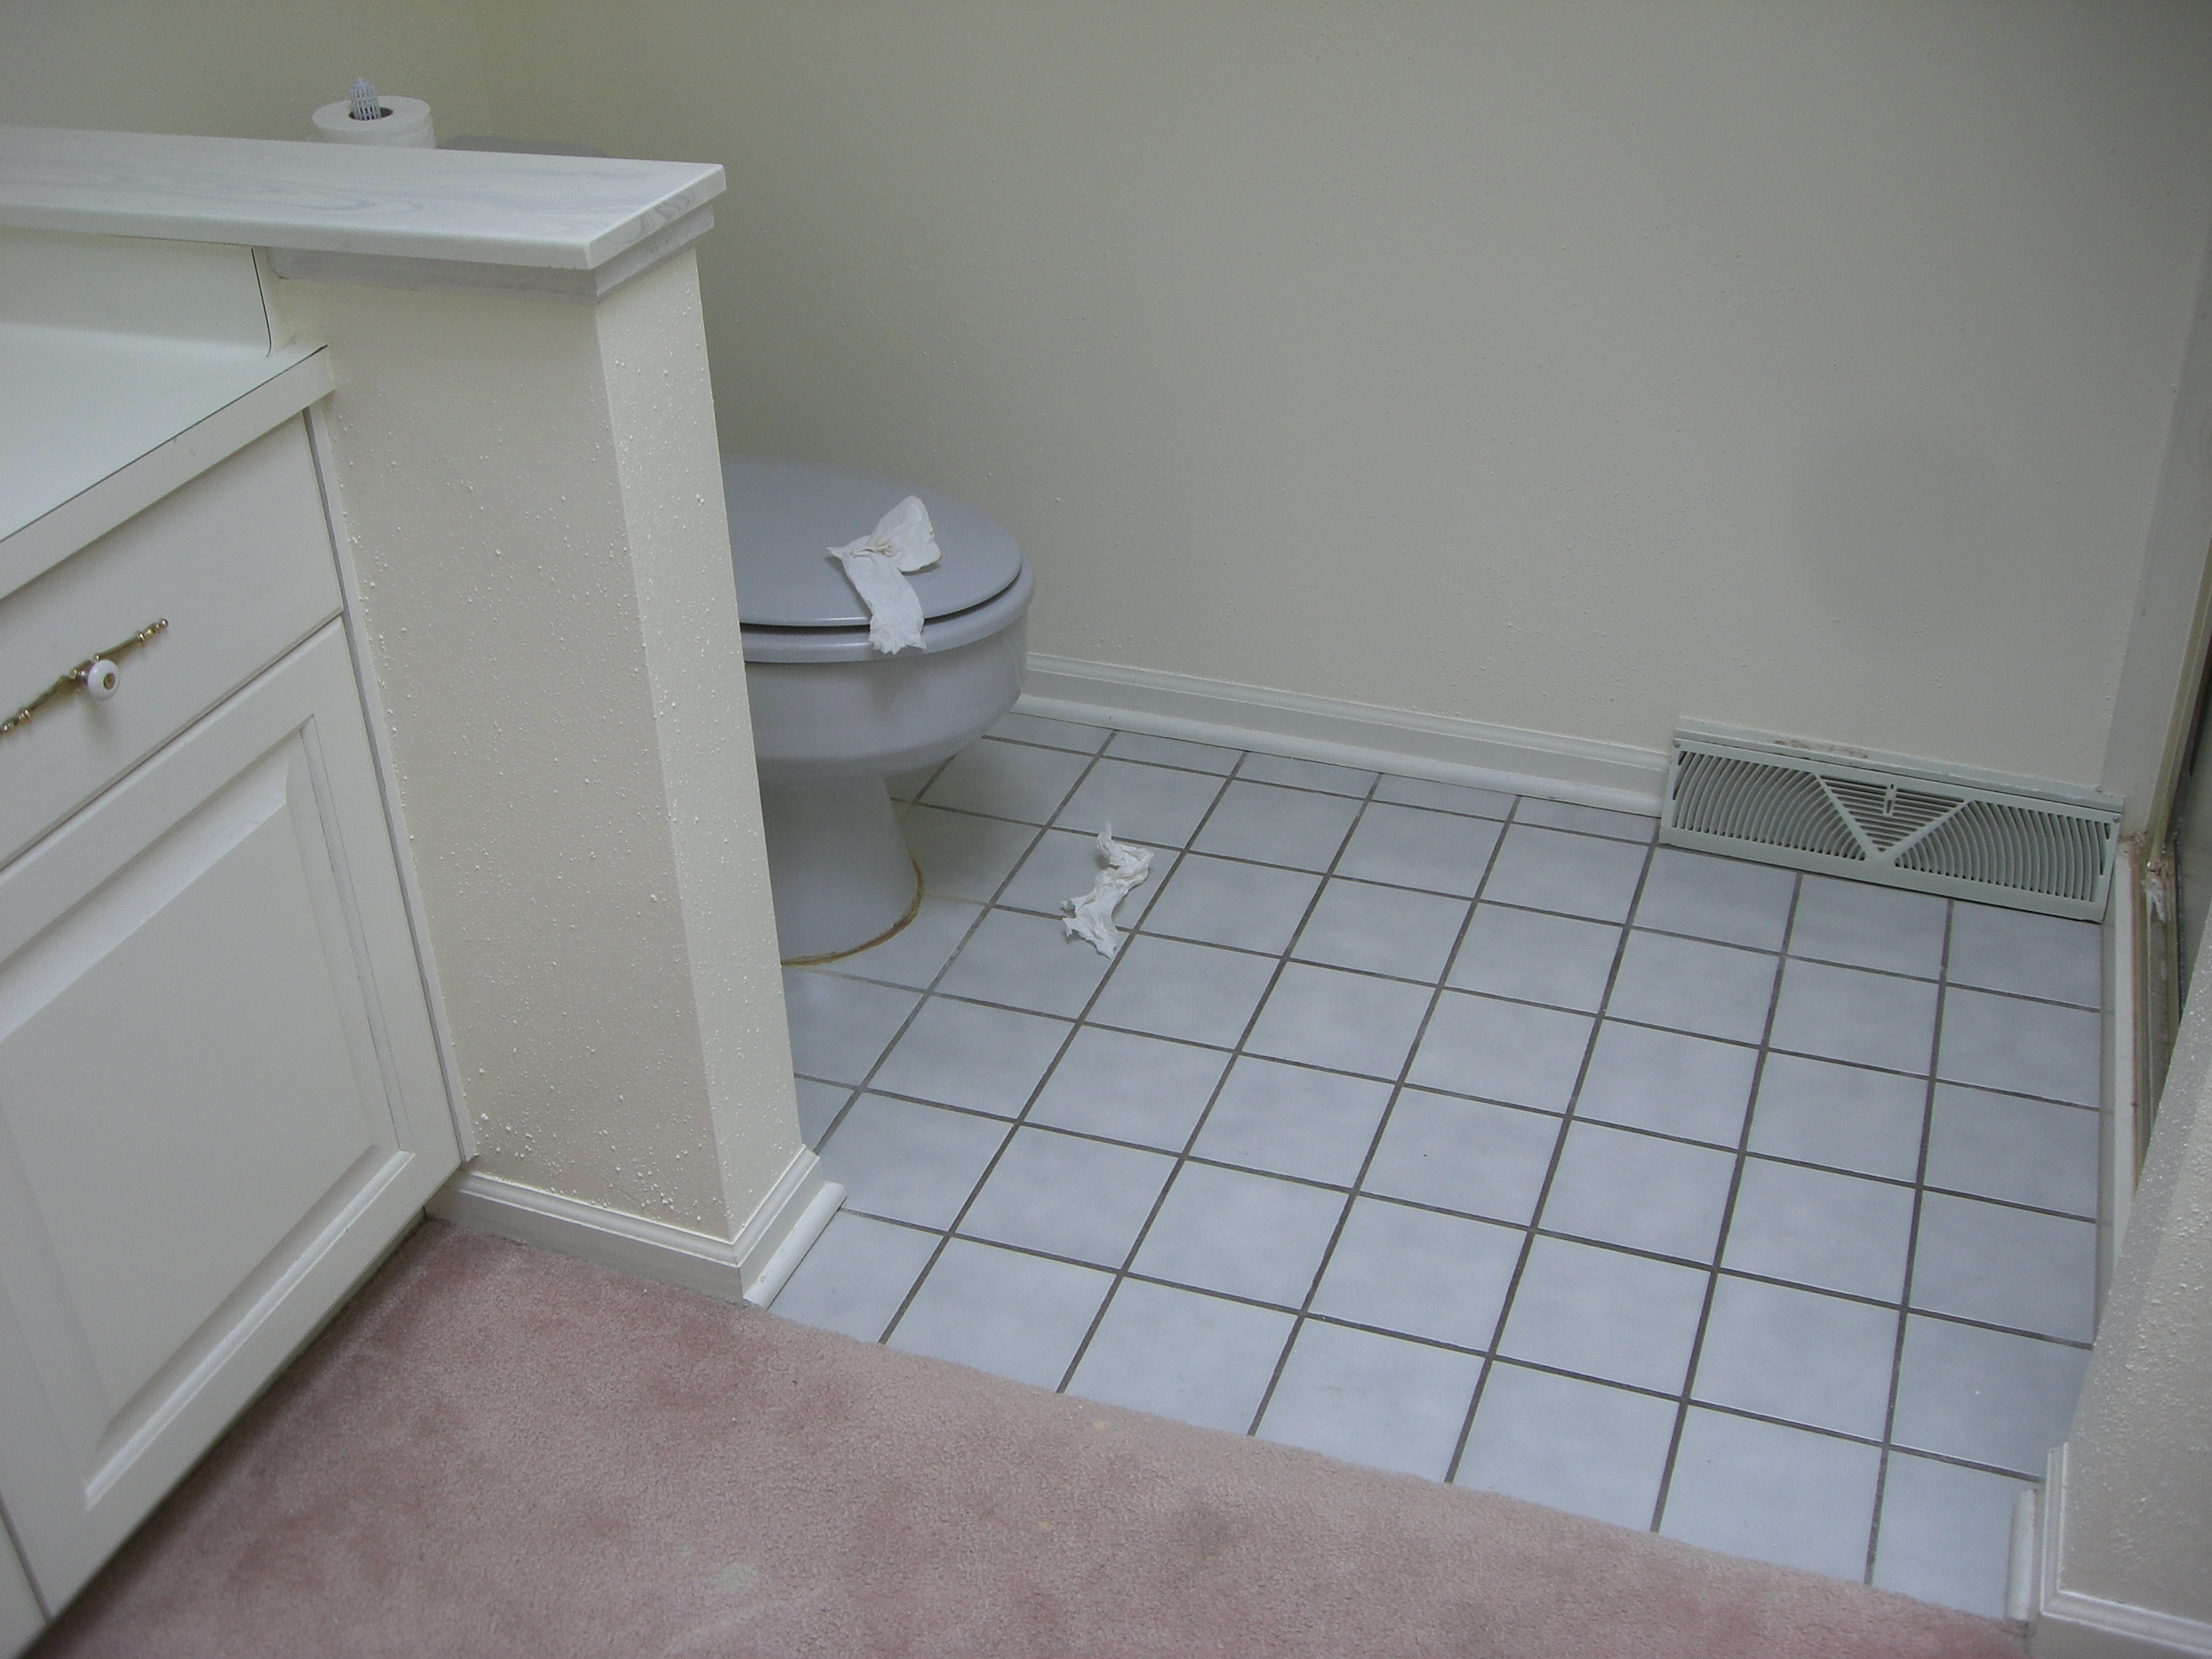 Mauve Carpet & Gray Tile MUST GO!